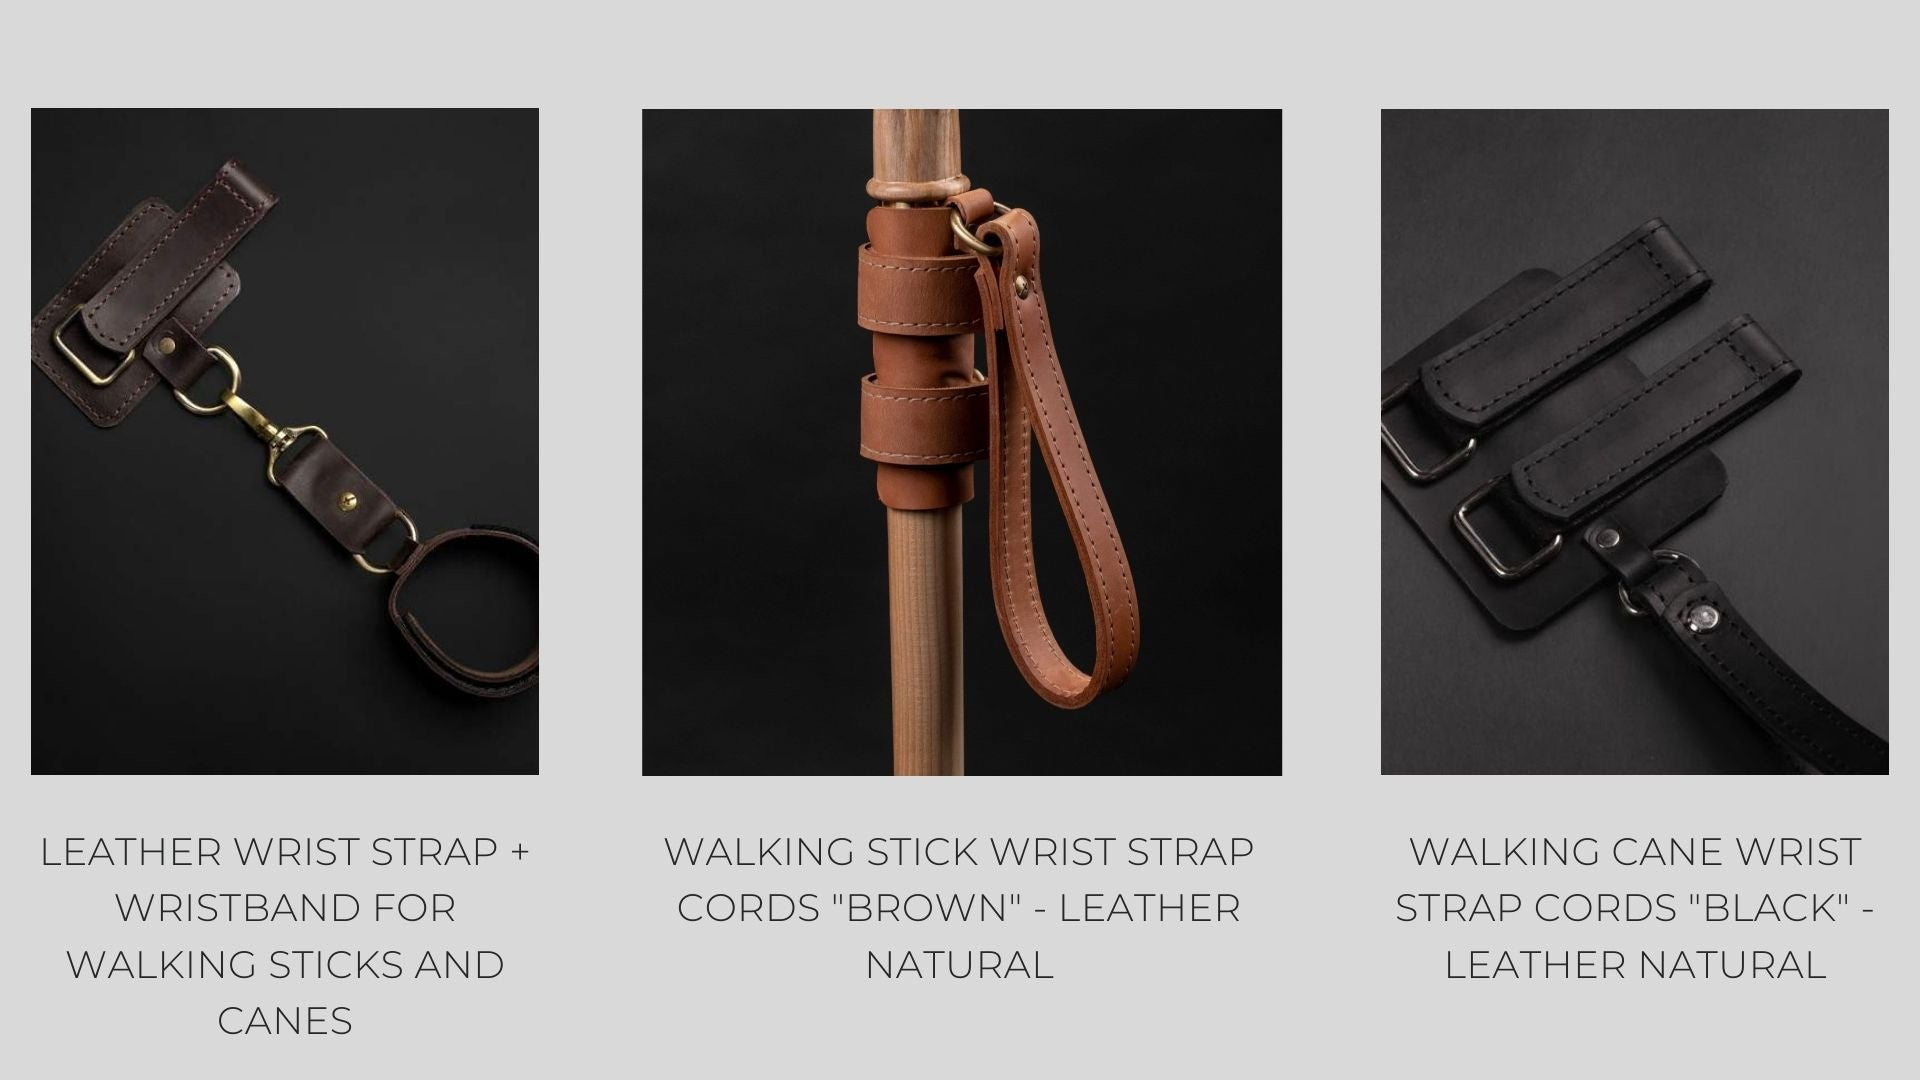 Walking cane accessories wrist straps leather